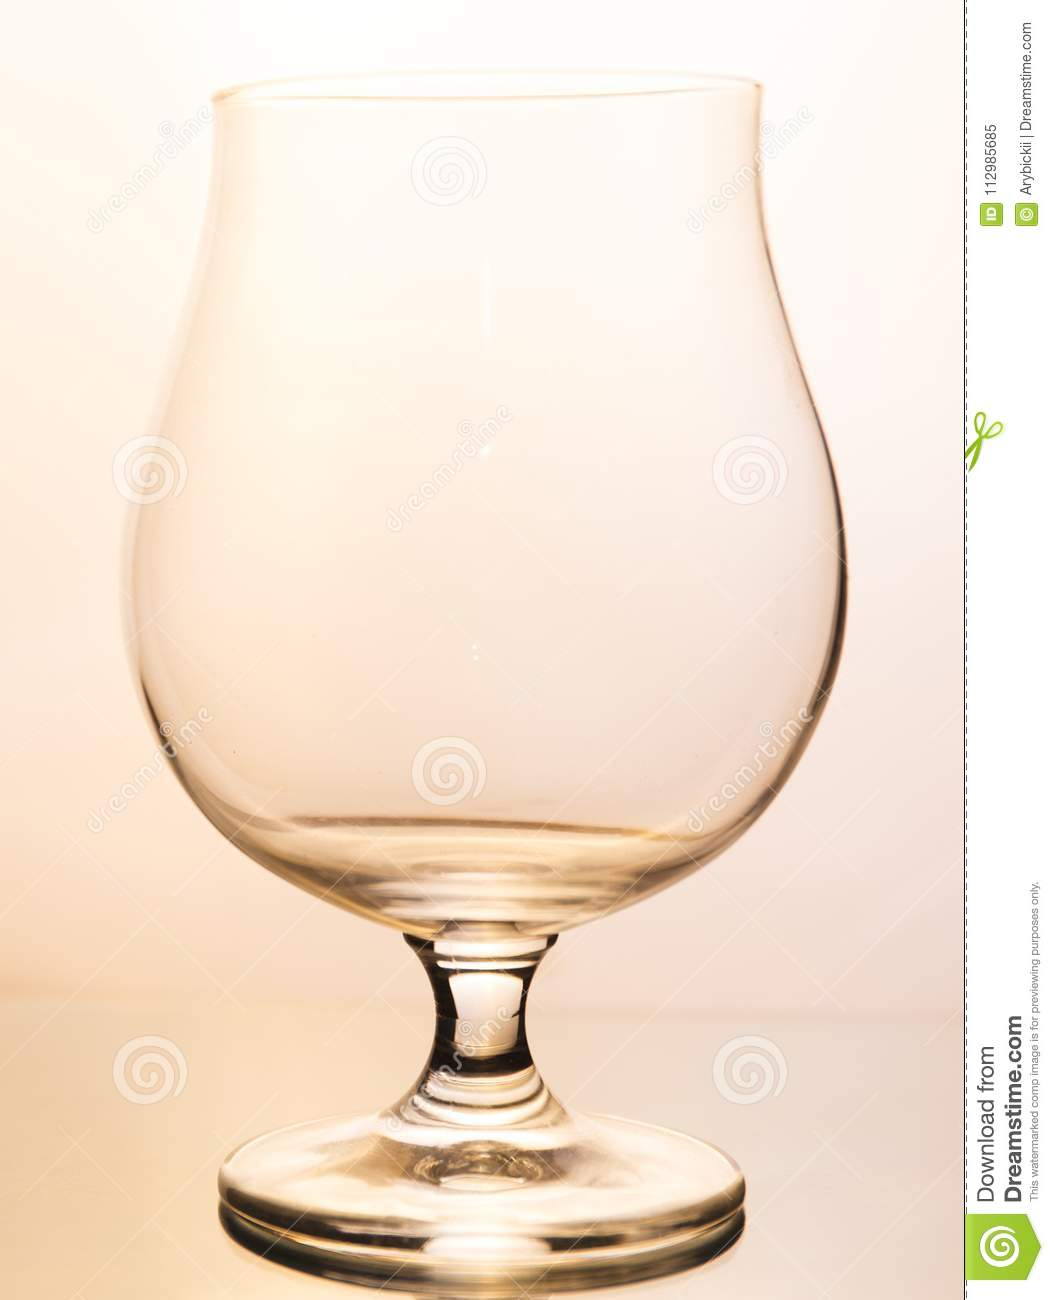 Empty wineglass on white background